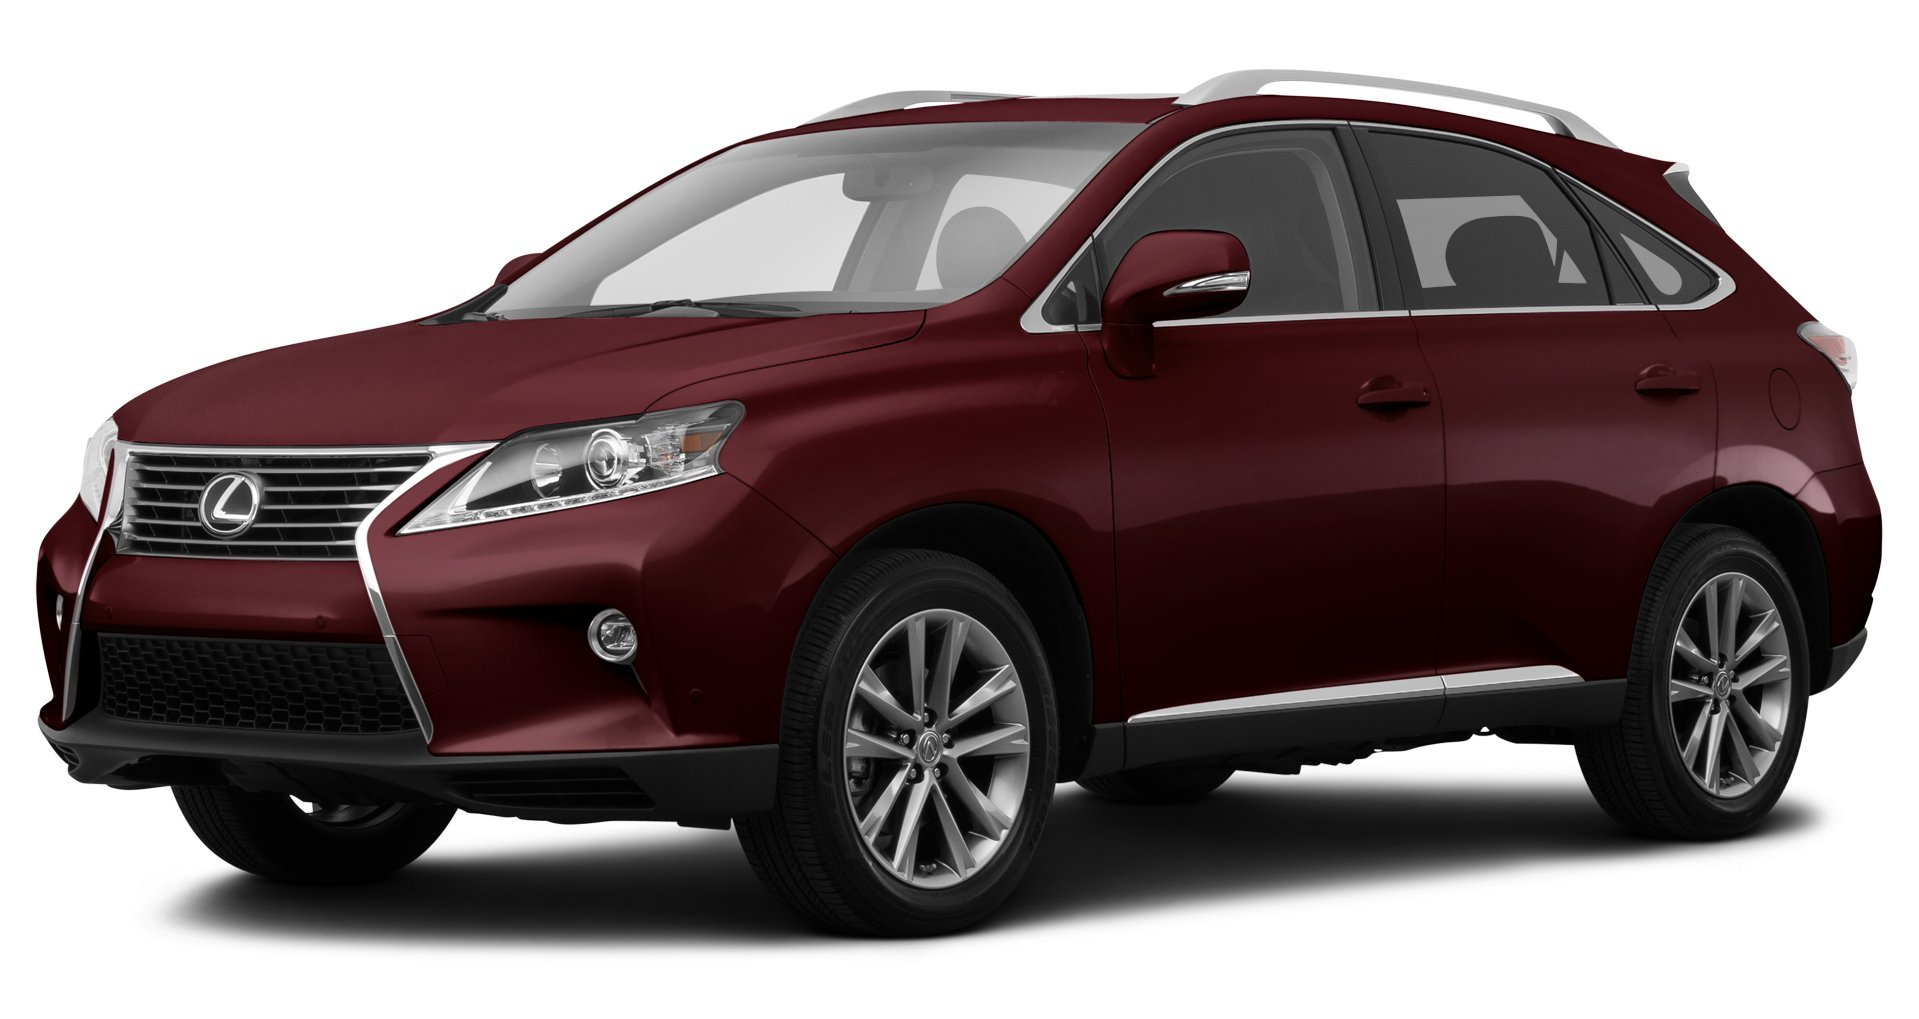 front photos features lexus base reviews rx wheel drive suv price photo